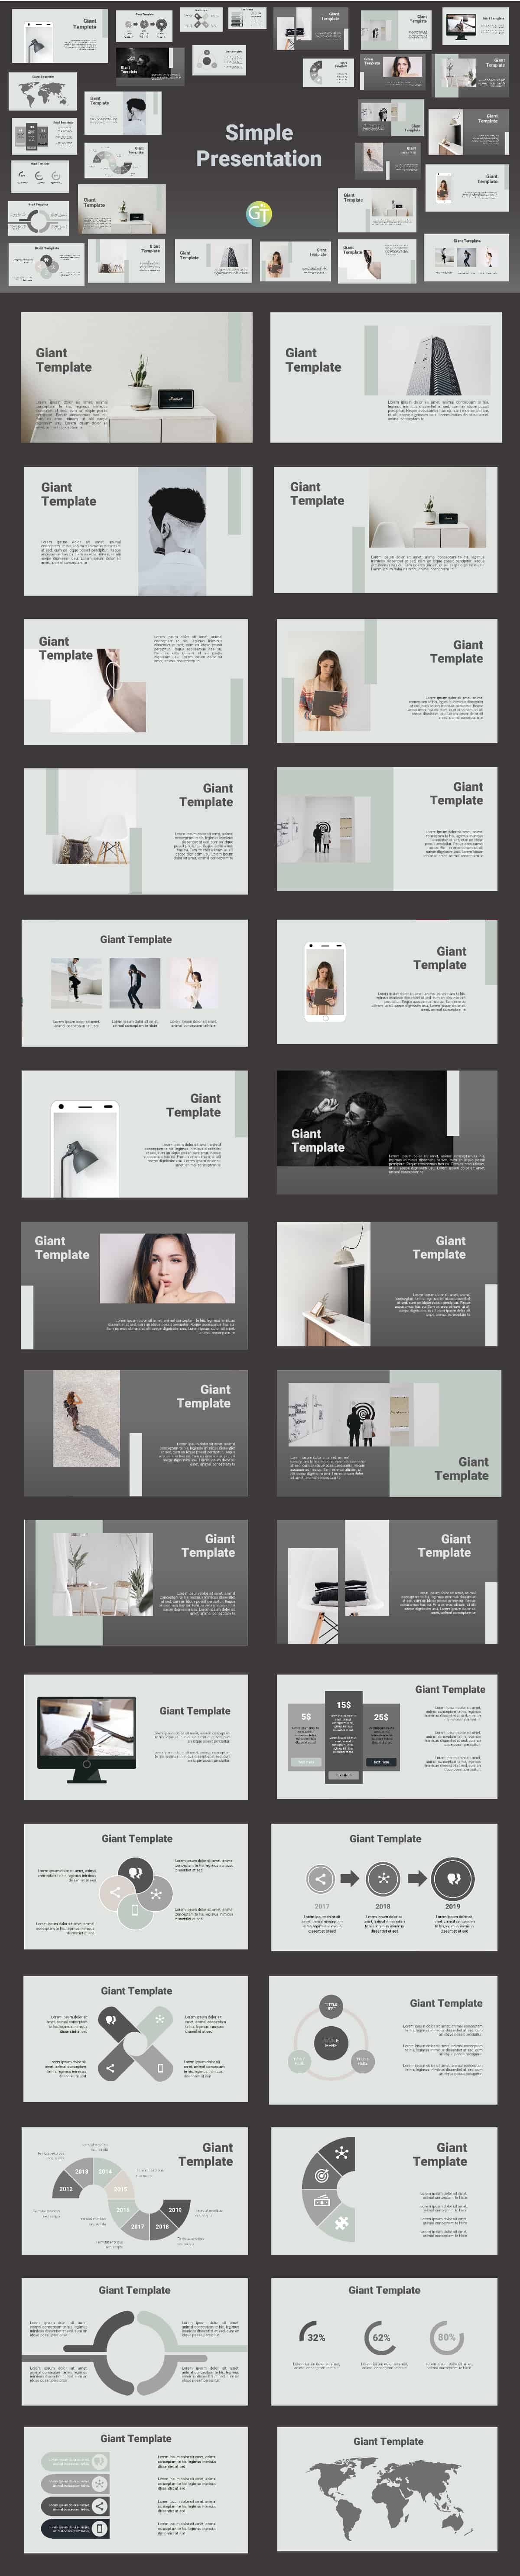 template ppt simple preview